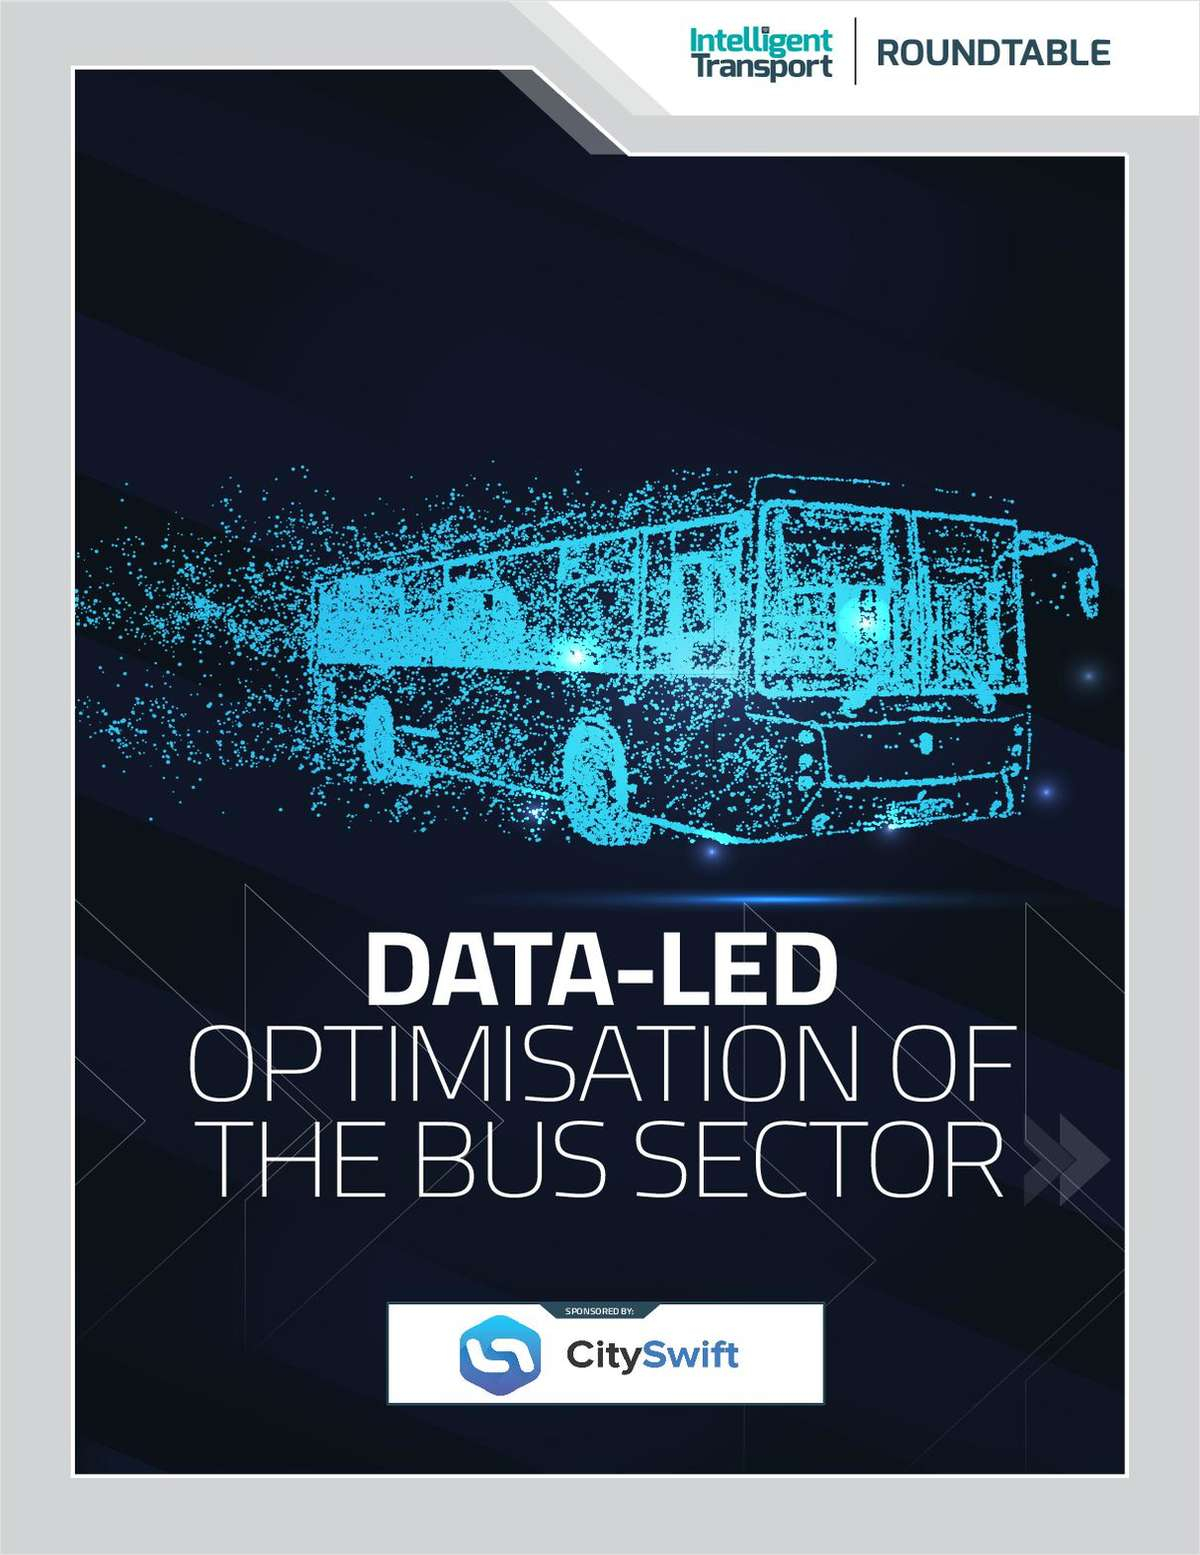 Data-led optimisation of the bus sector